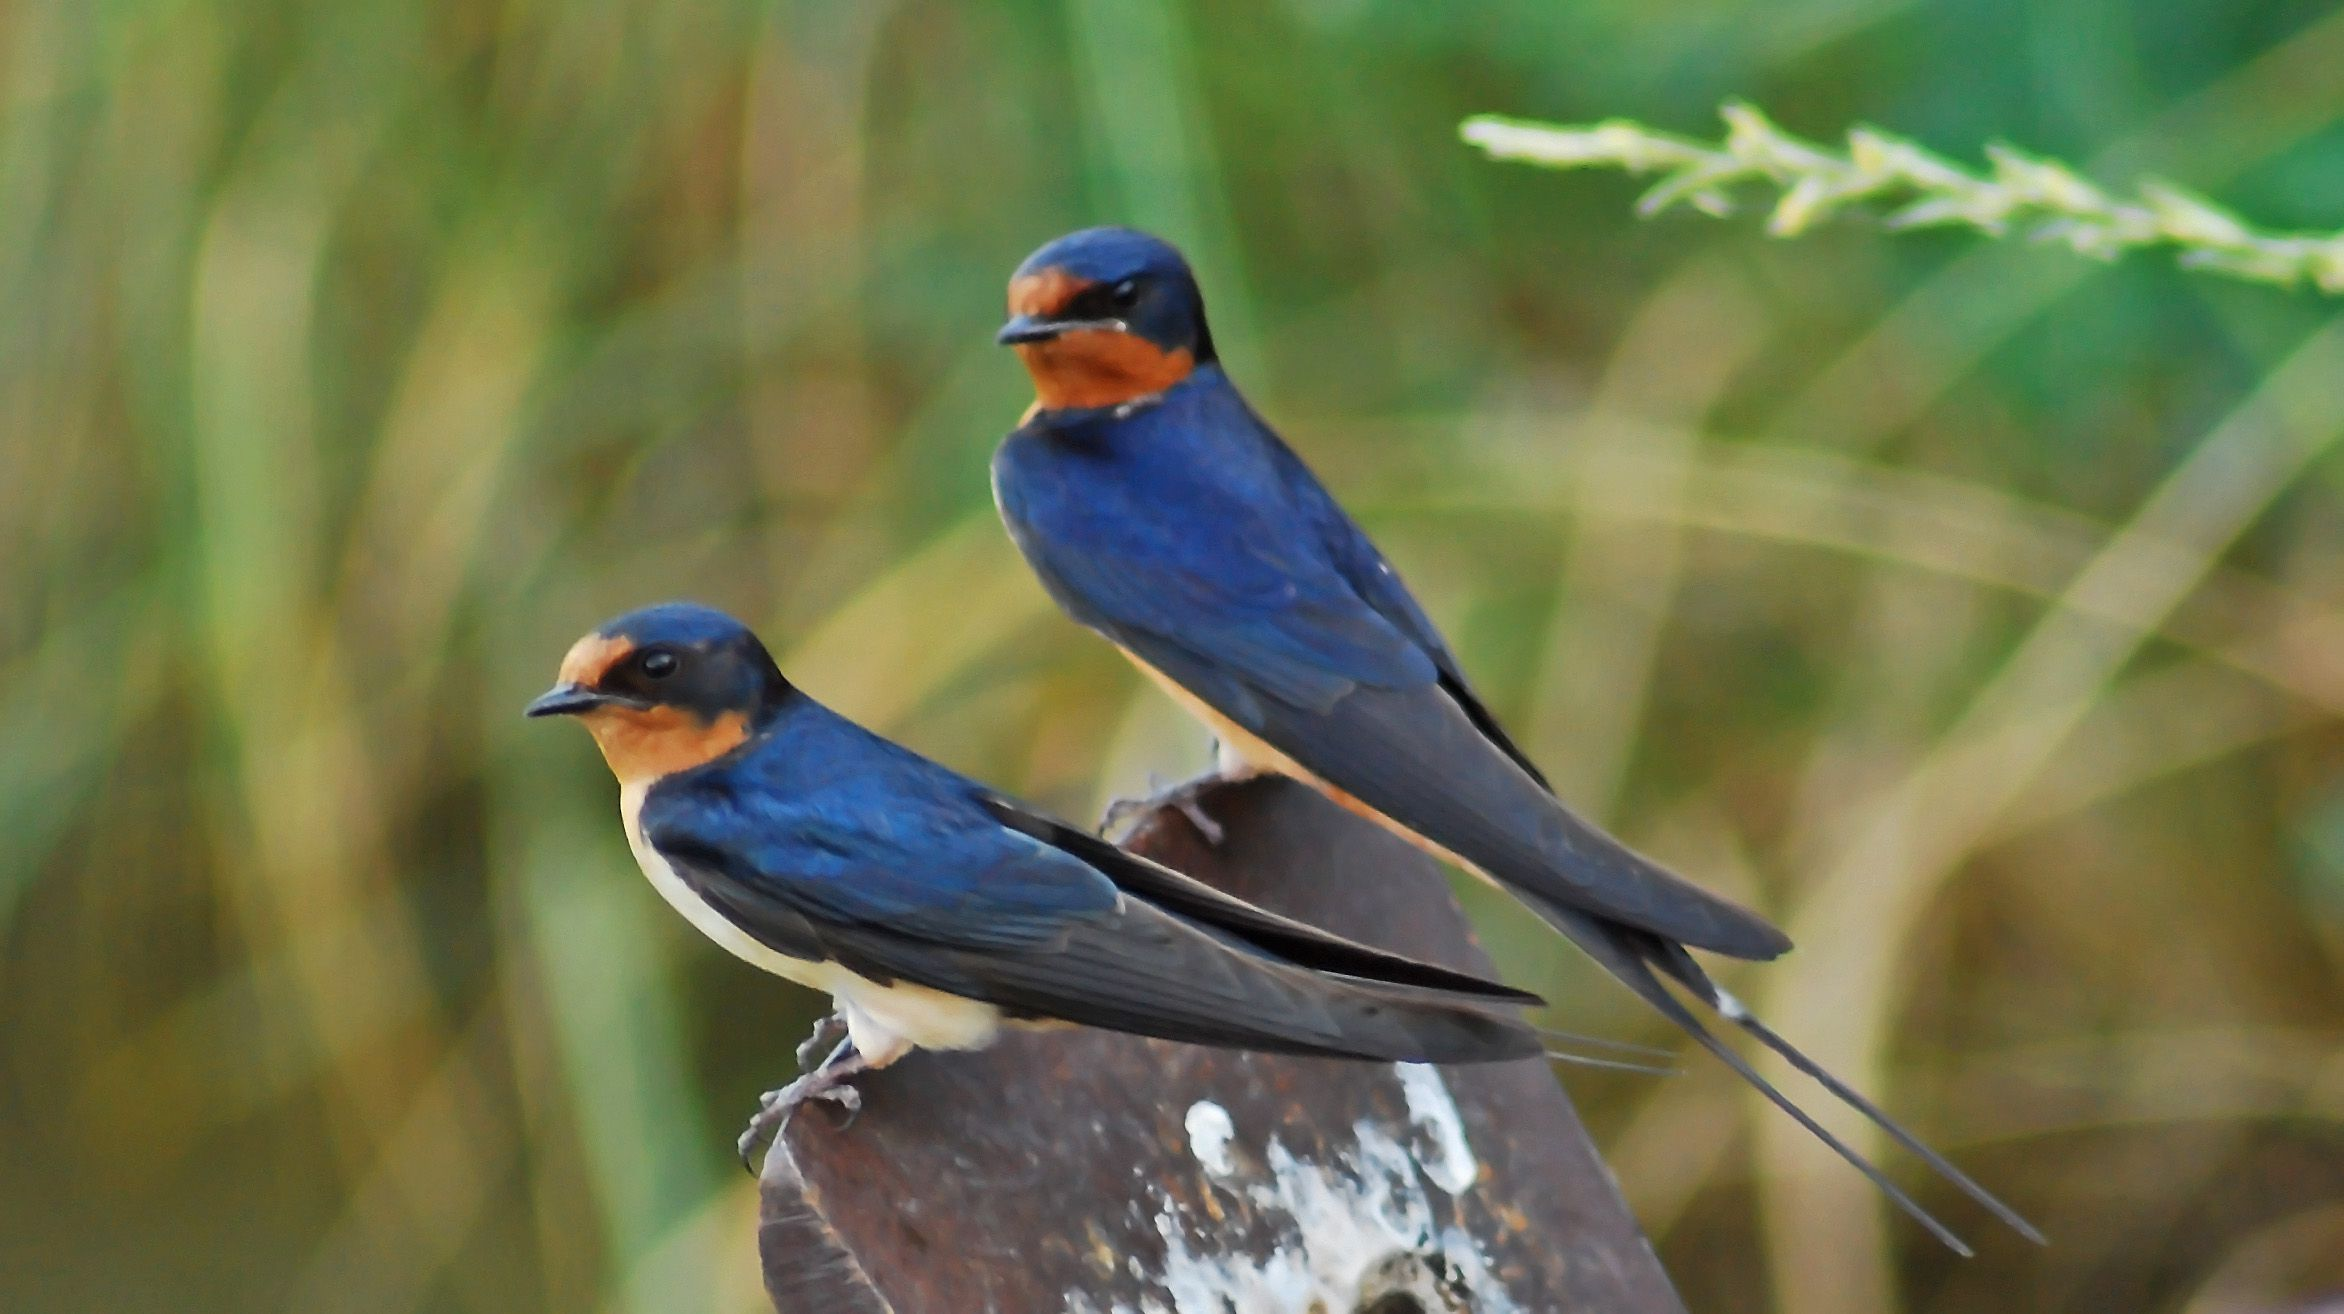 Barn swallows size